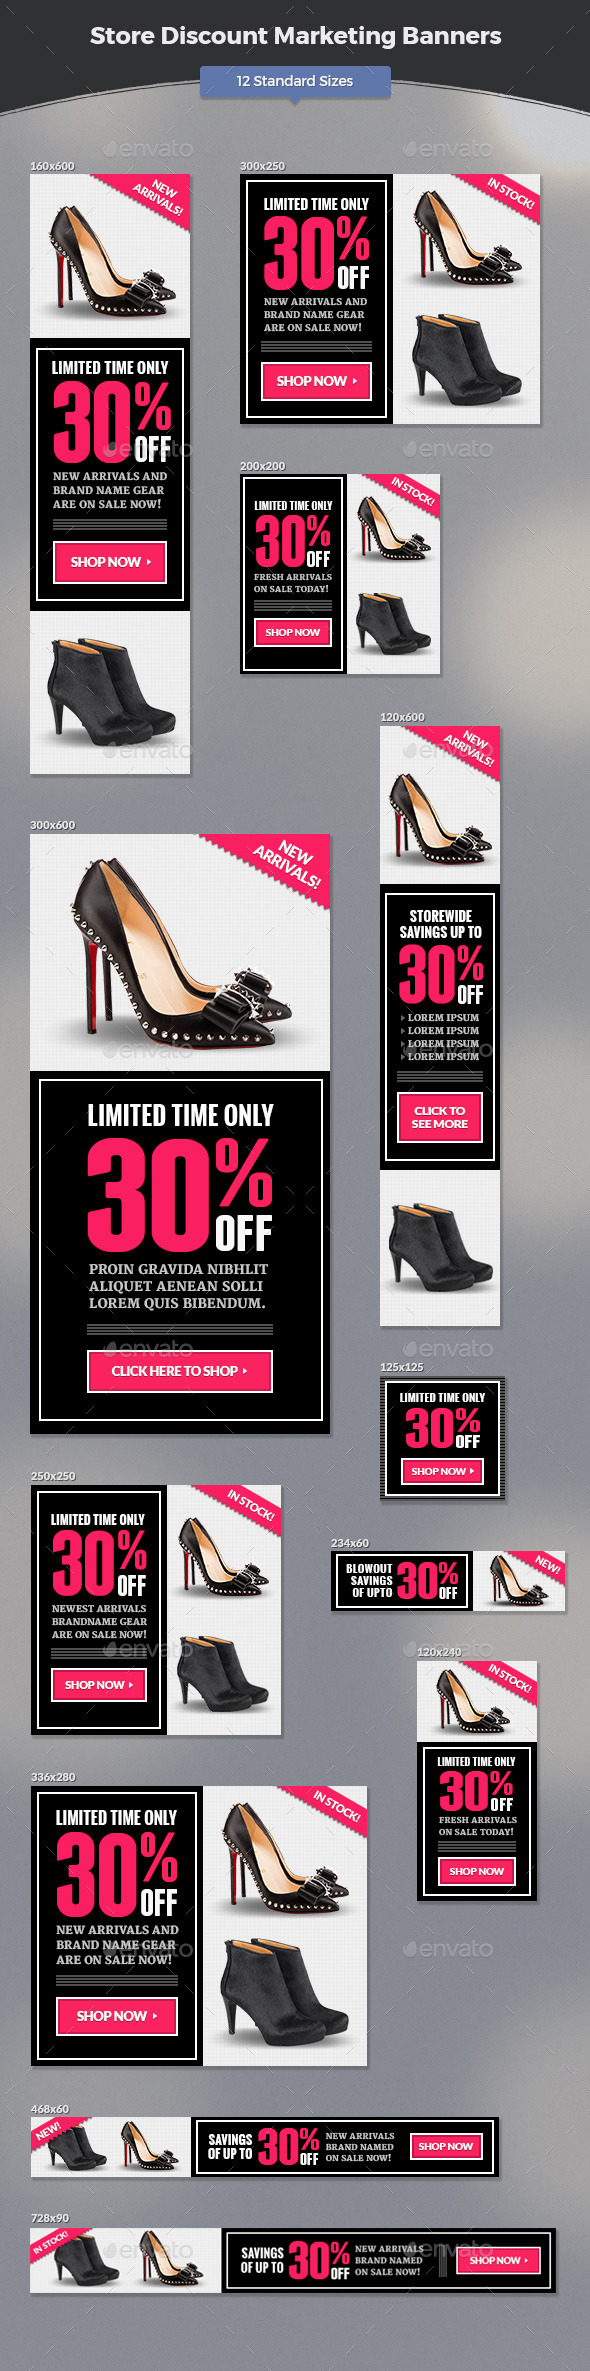 GraphicRiver Store Discount Marketing Banners 11787631